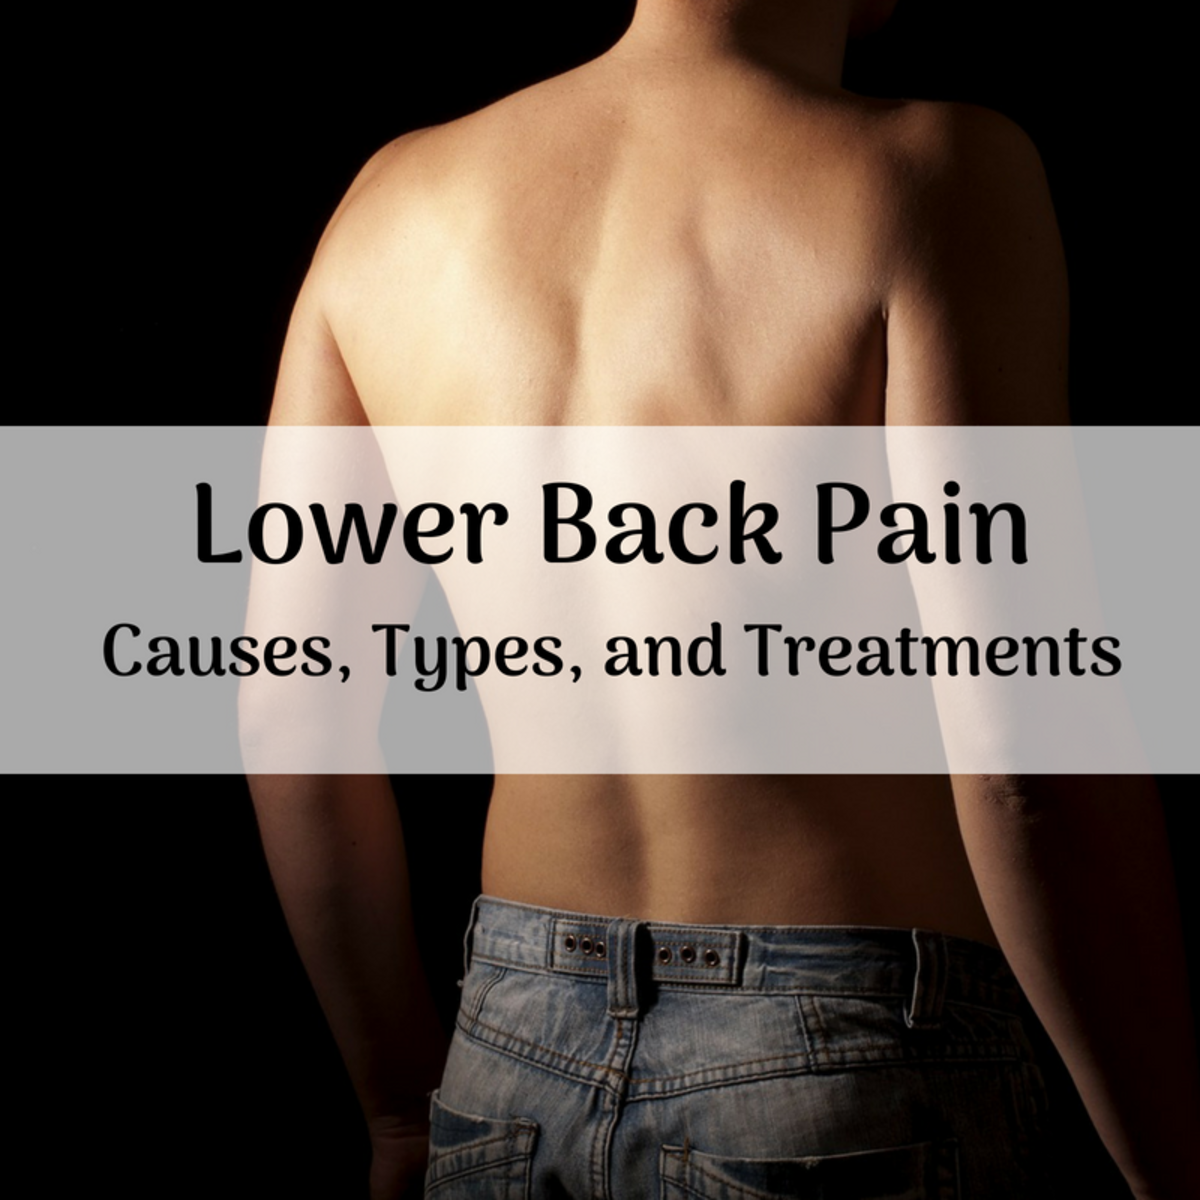 Lower Back Pain Types, Causes, and Treatments